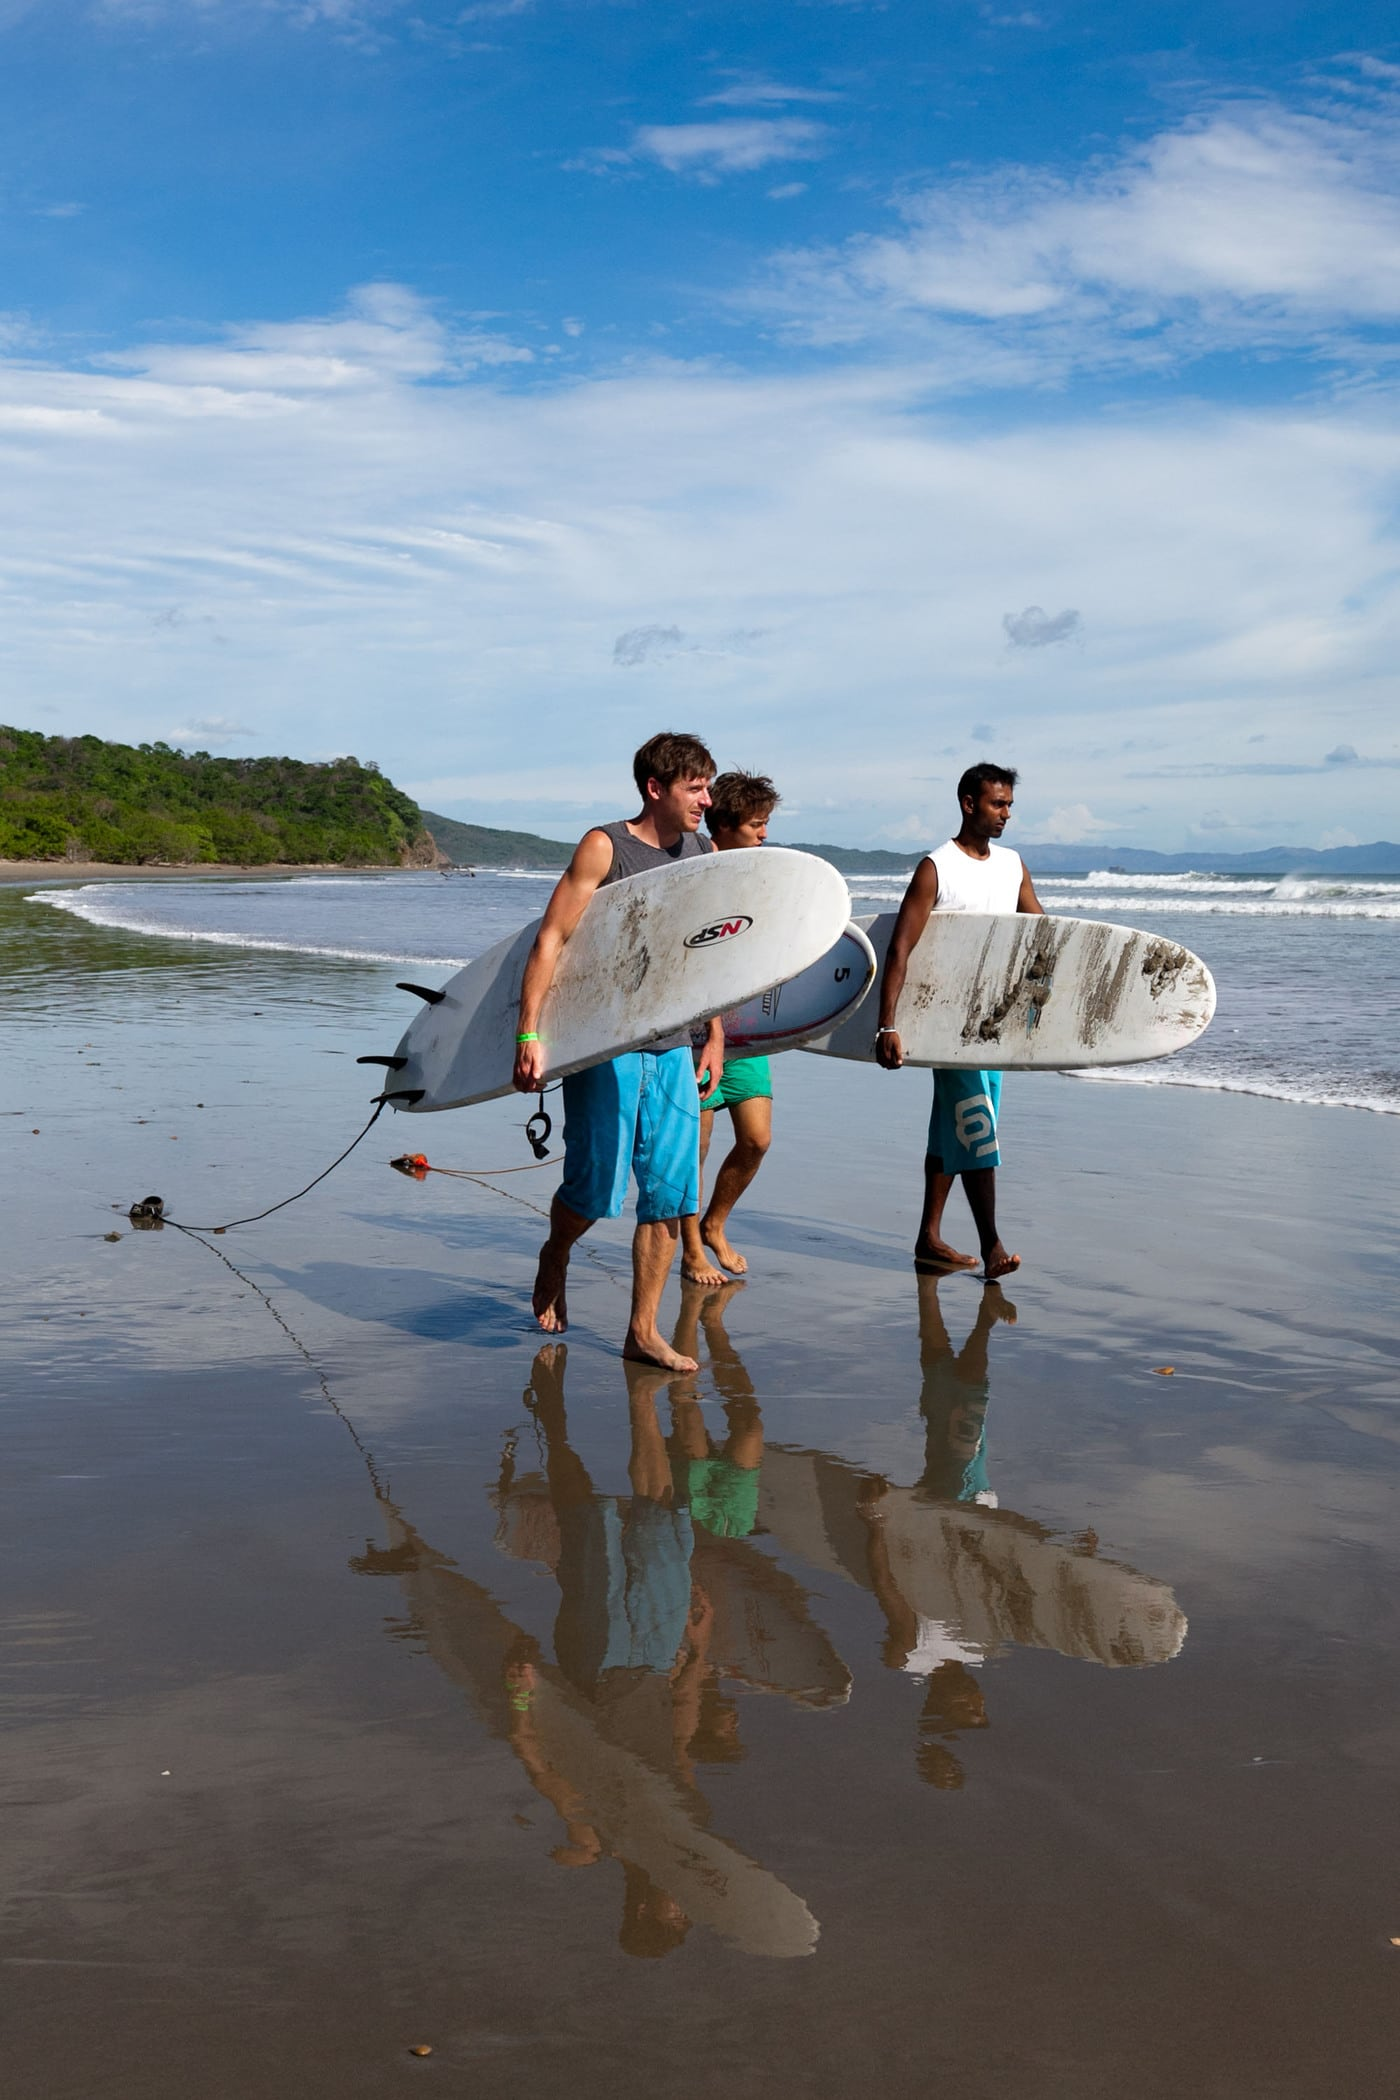 Surfing at Playa Hermosa in Nicaragua